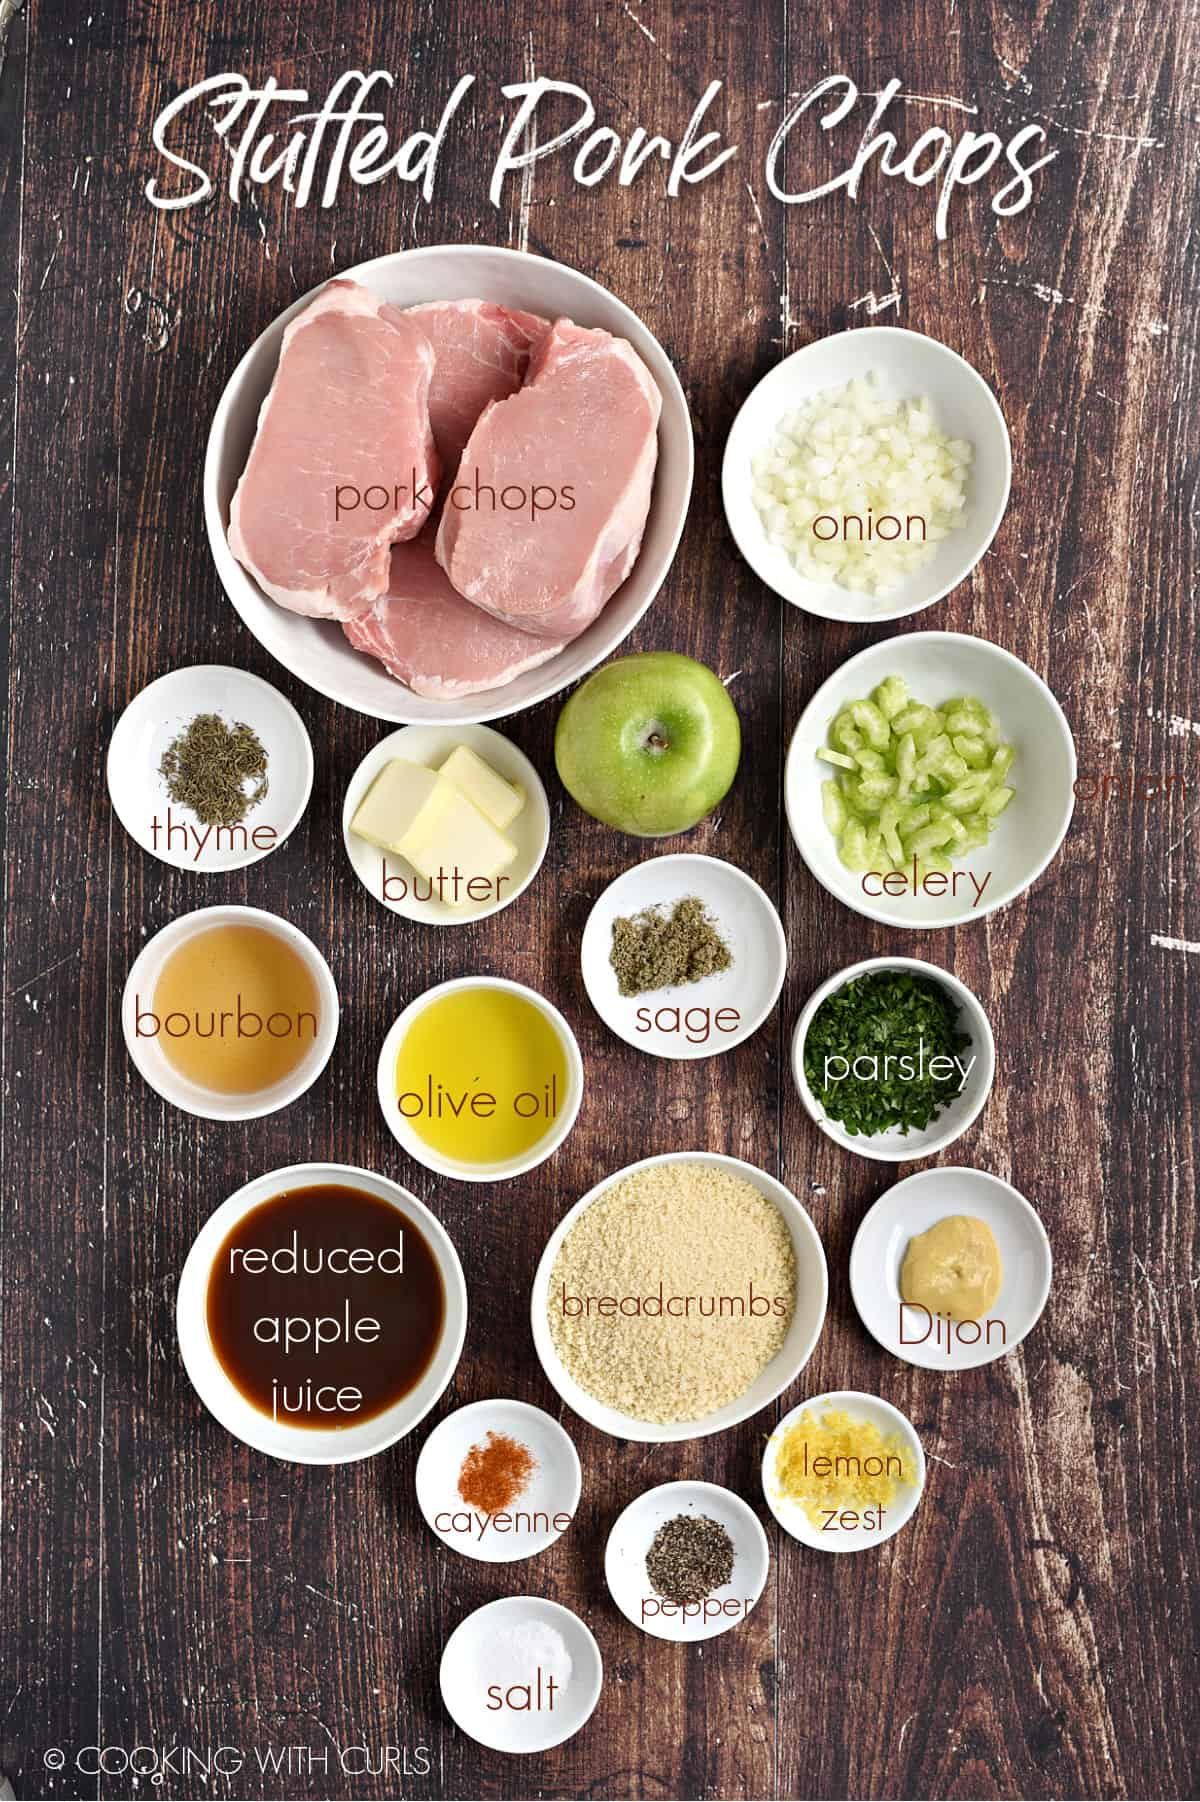 Ingredients to make Stuffed Pork Chops in white bowls.